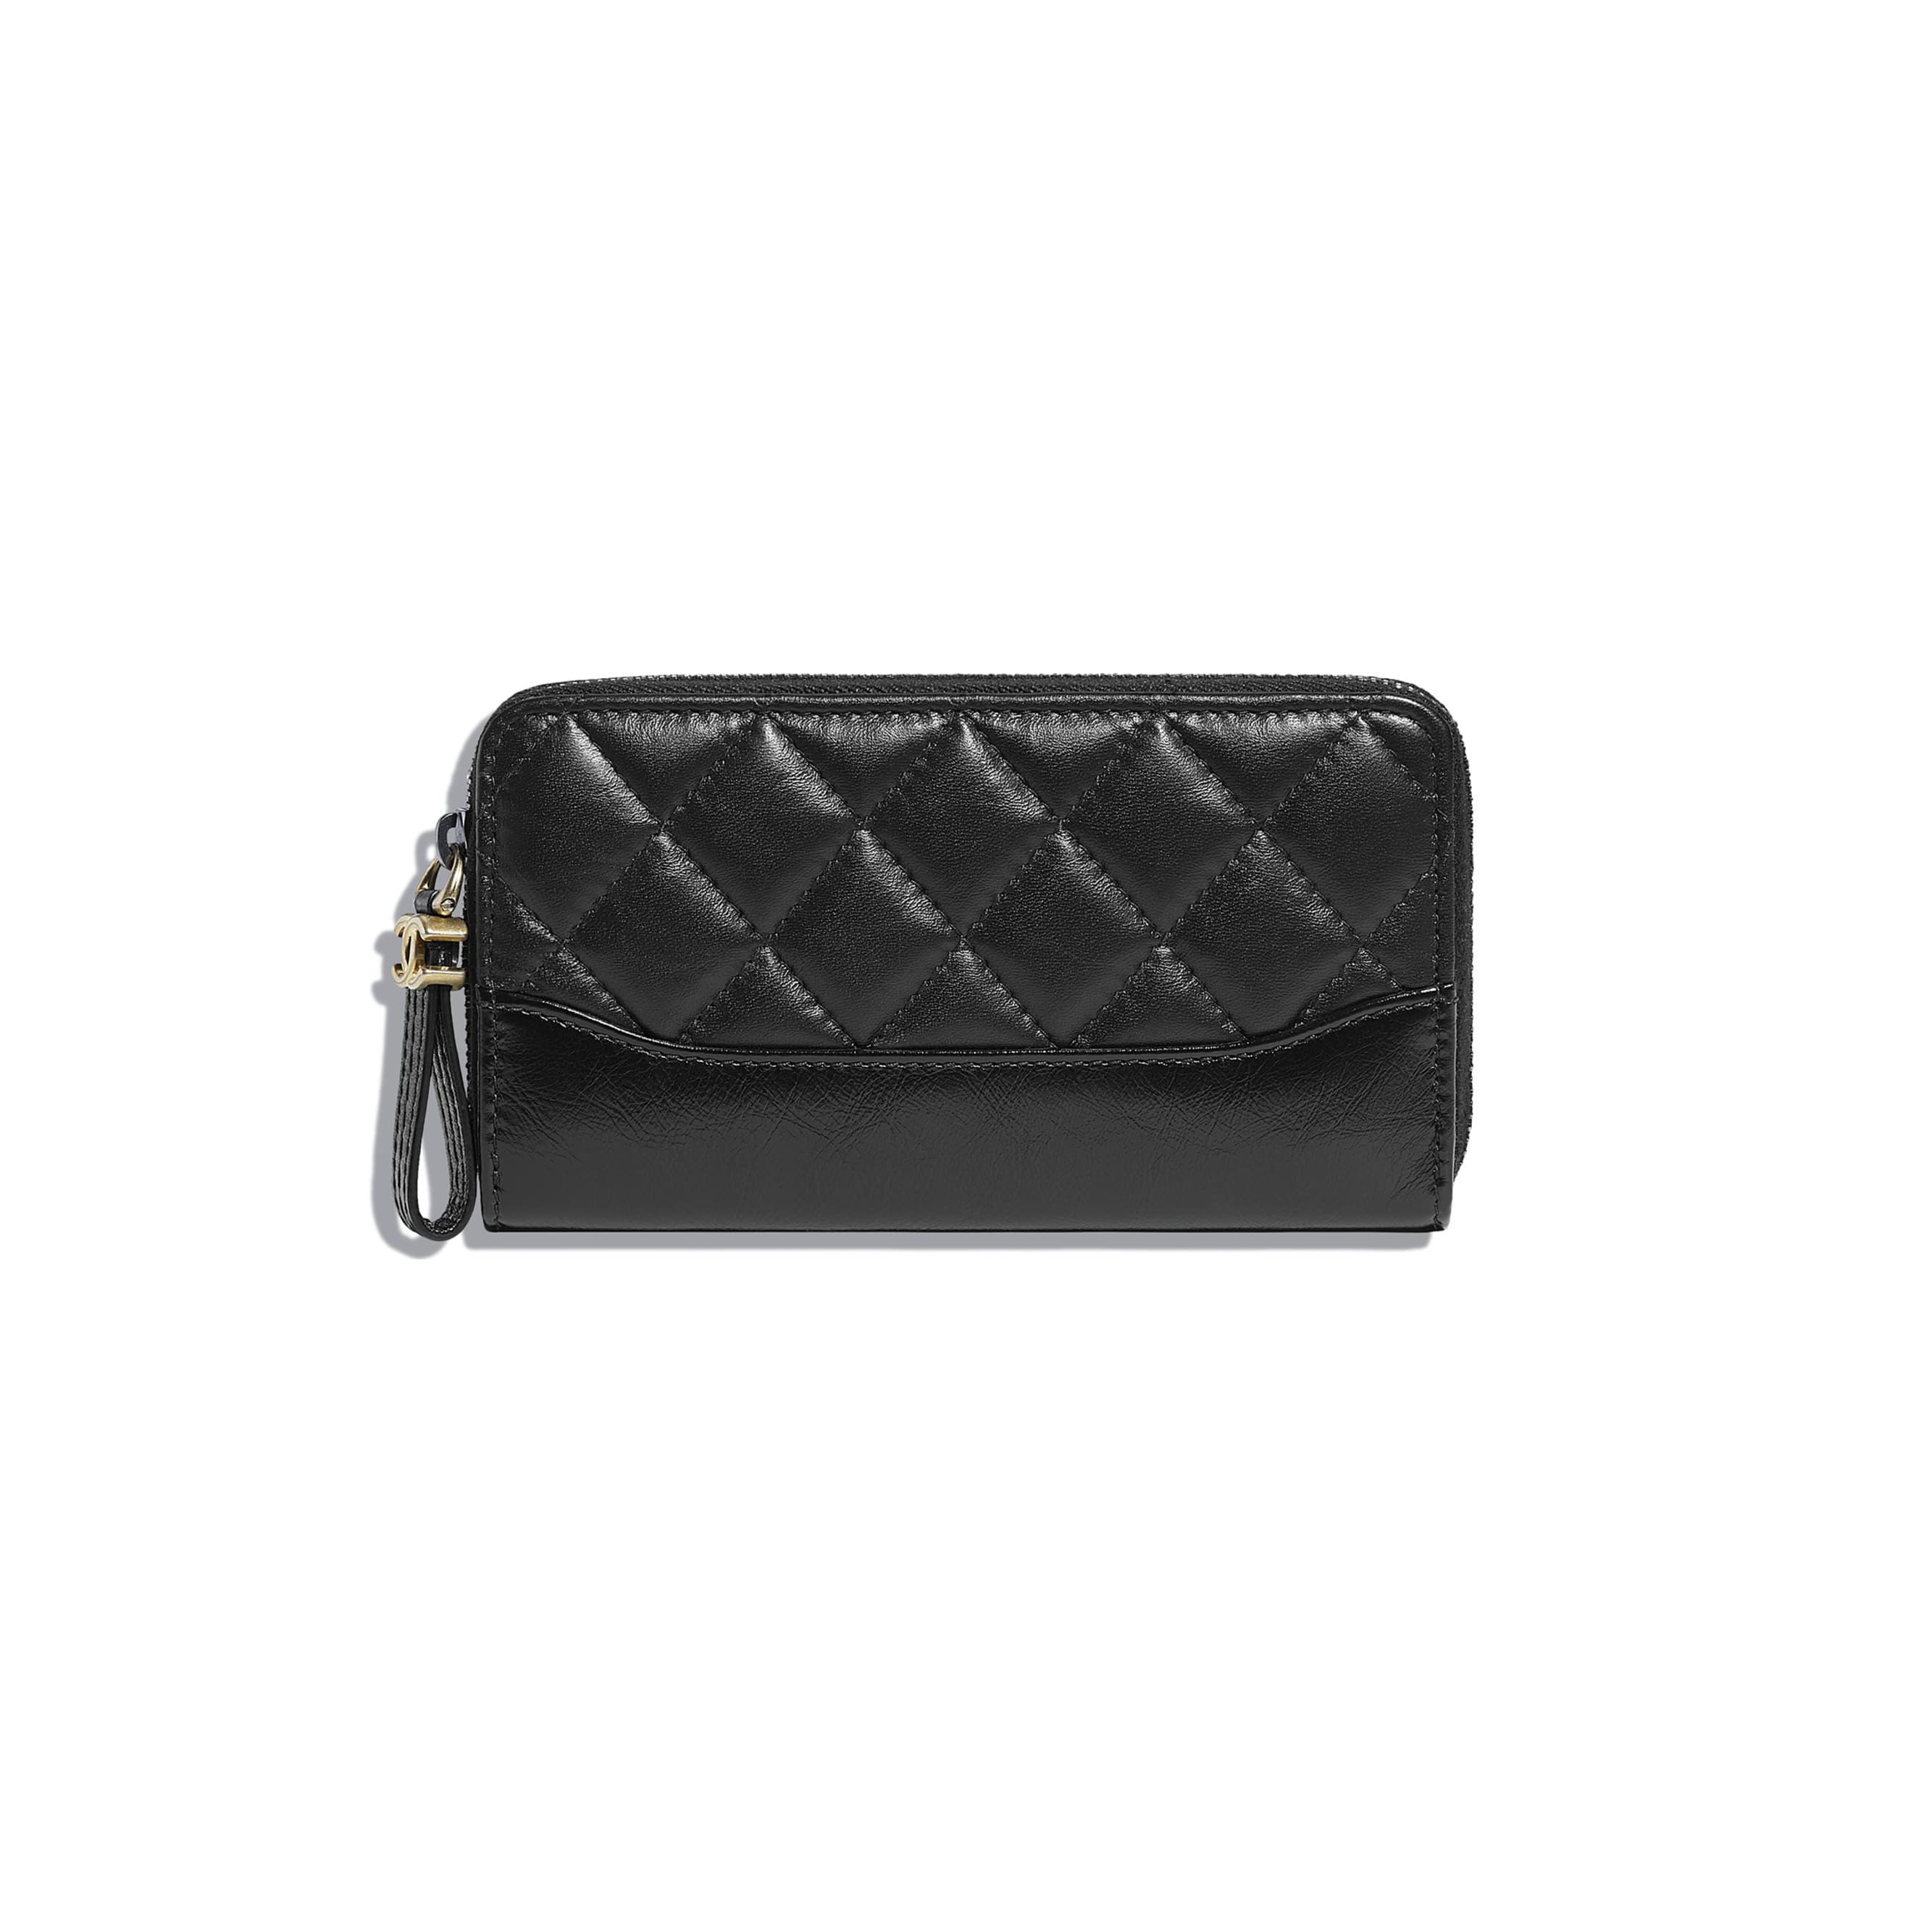 Zip Wallet - Black - Aged Calfskin, Smooth Calfskin, Gold-Tone, Silver-Tone & Ruthenium-Finish Metal - CHANEL - Default view - see standard sized version